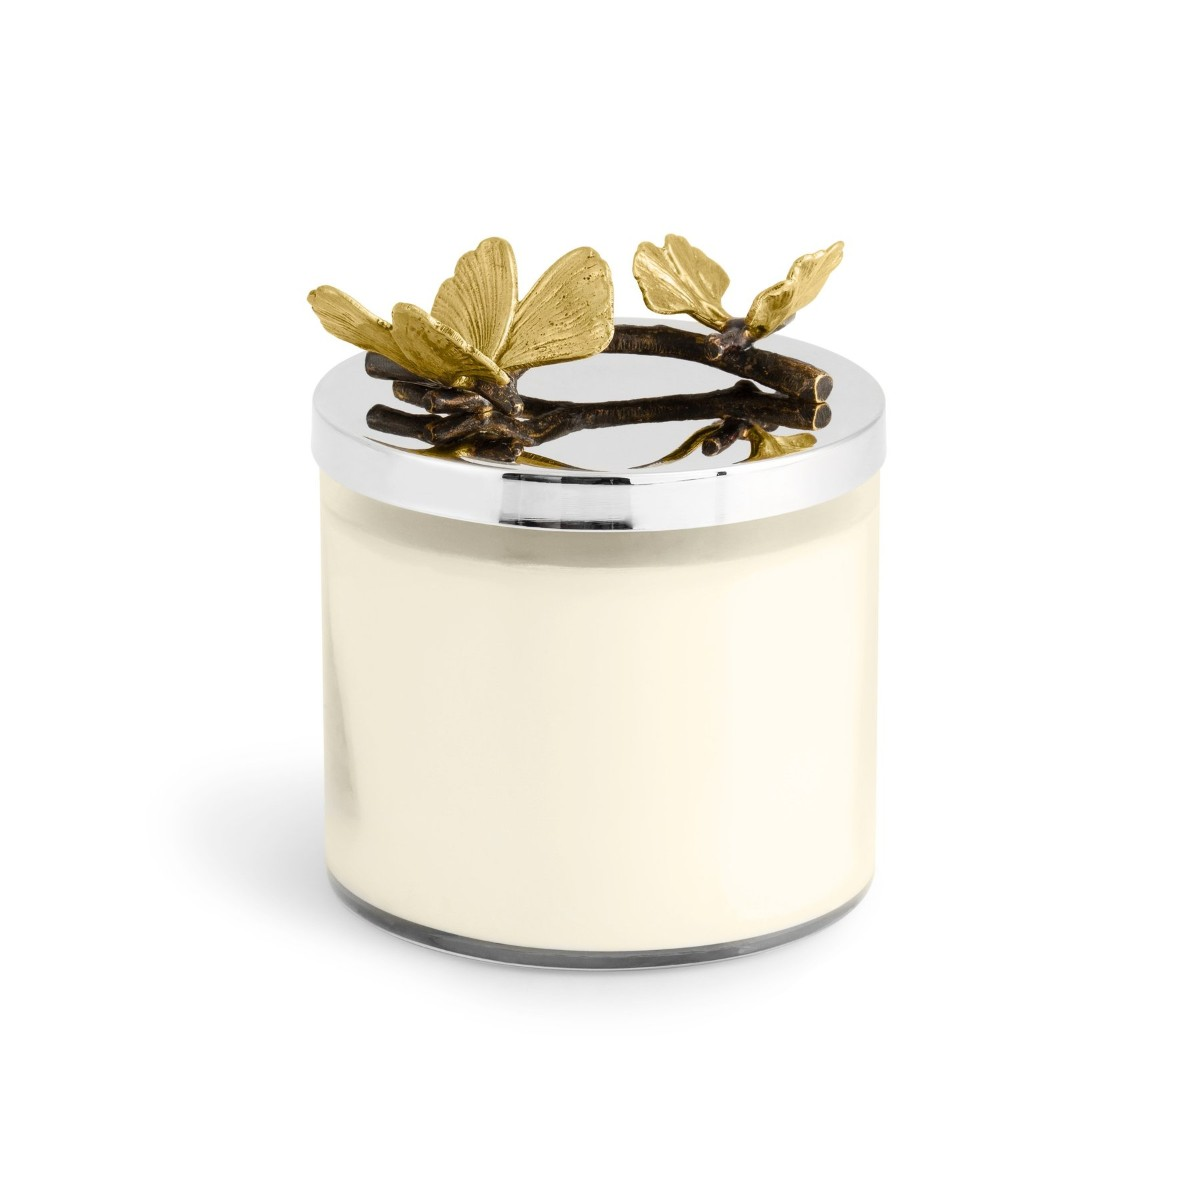 Michael Aram I Butterfly Ginkgo Candle